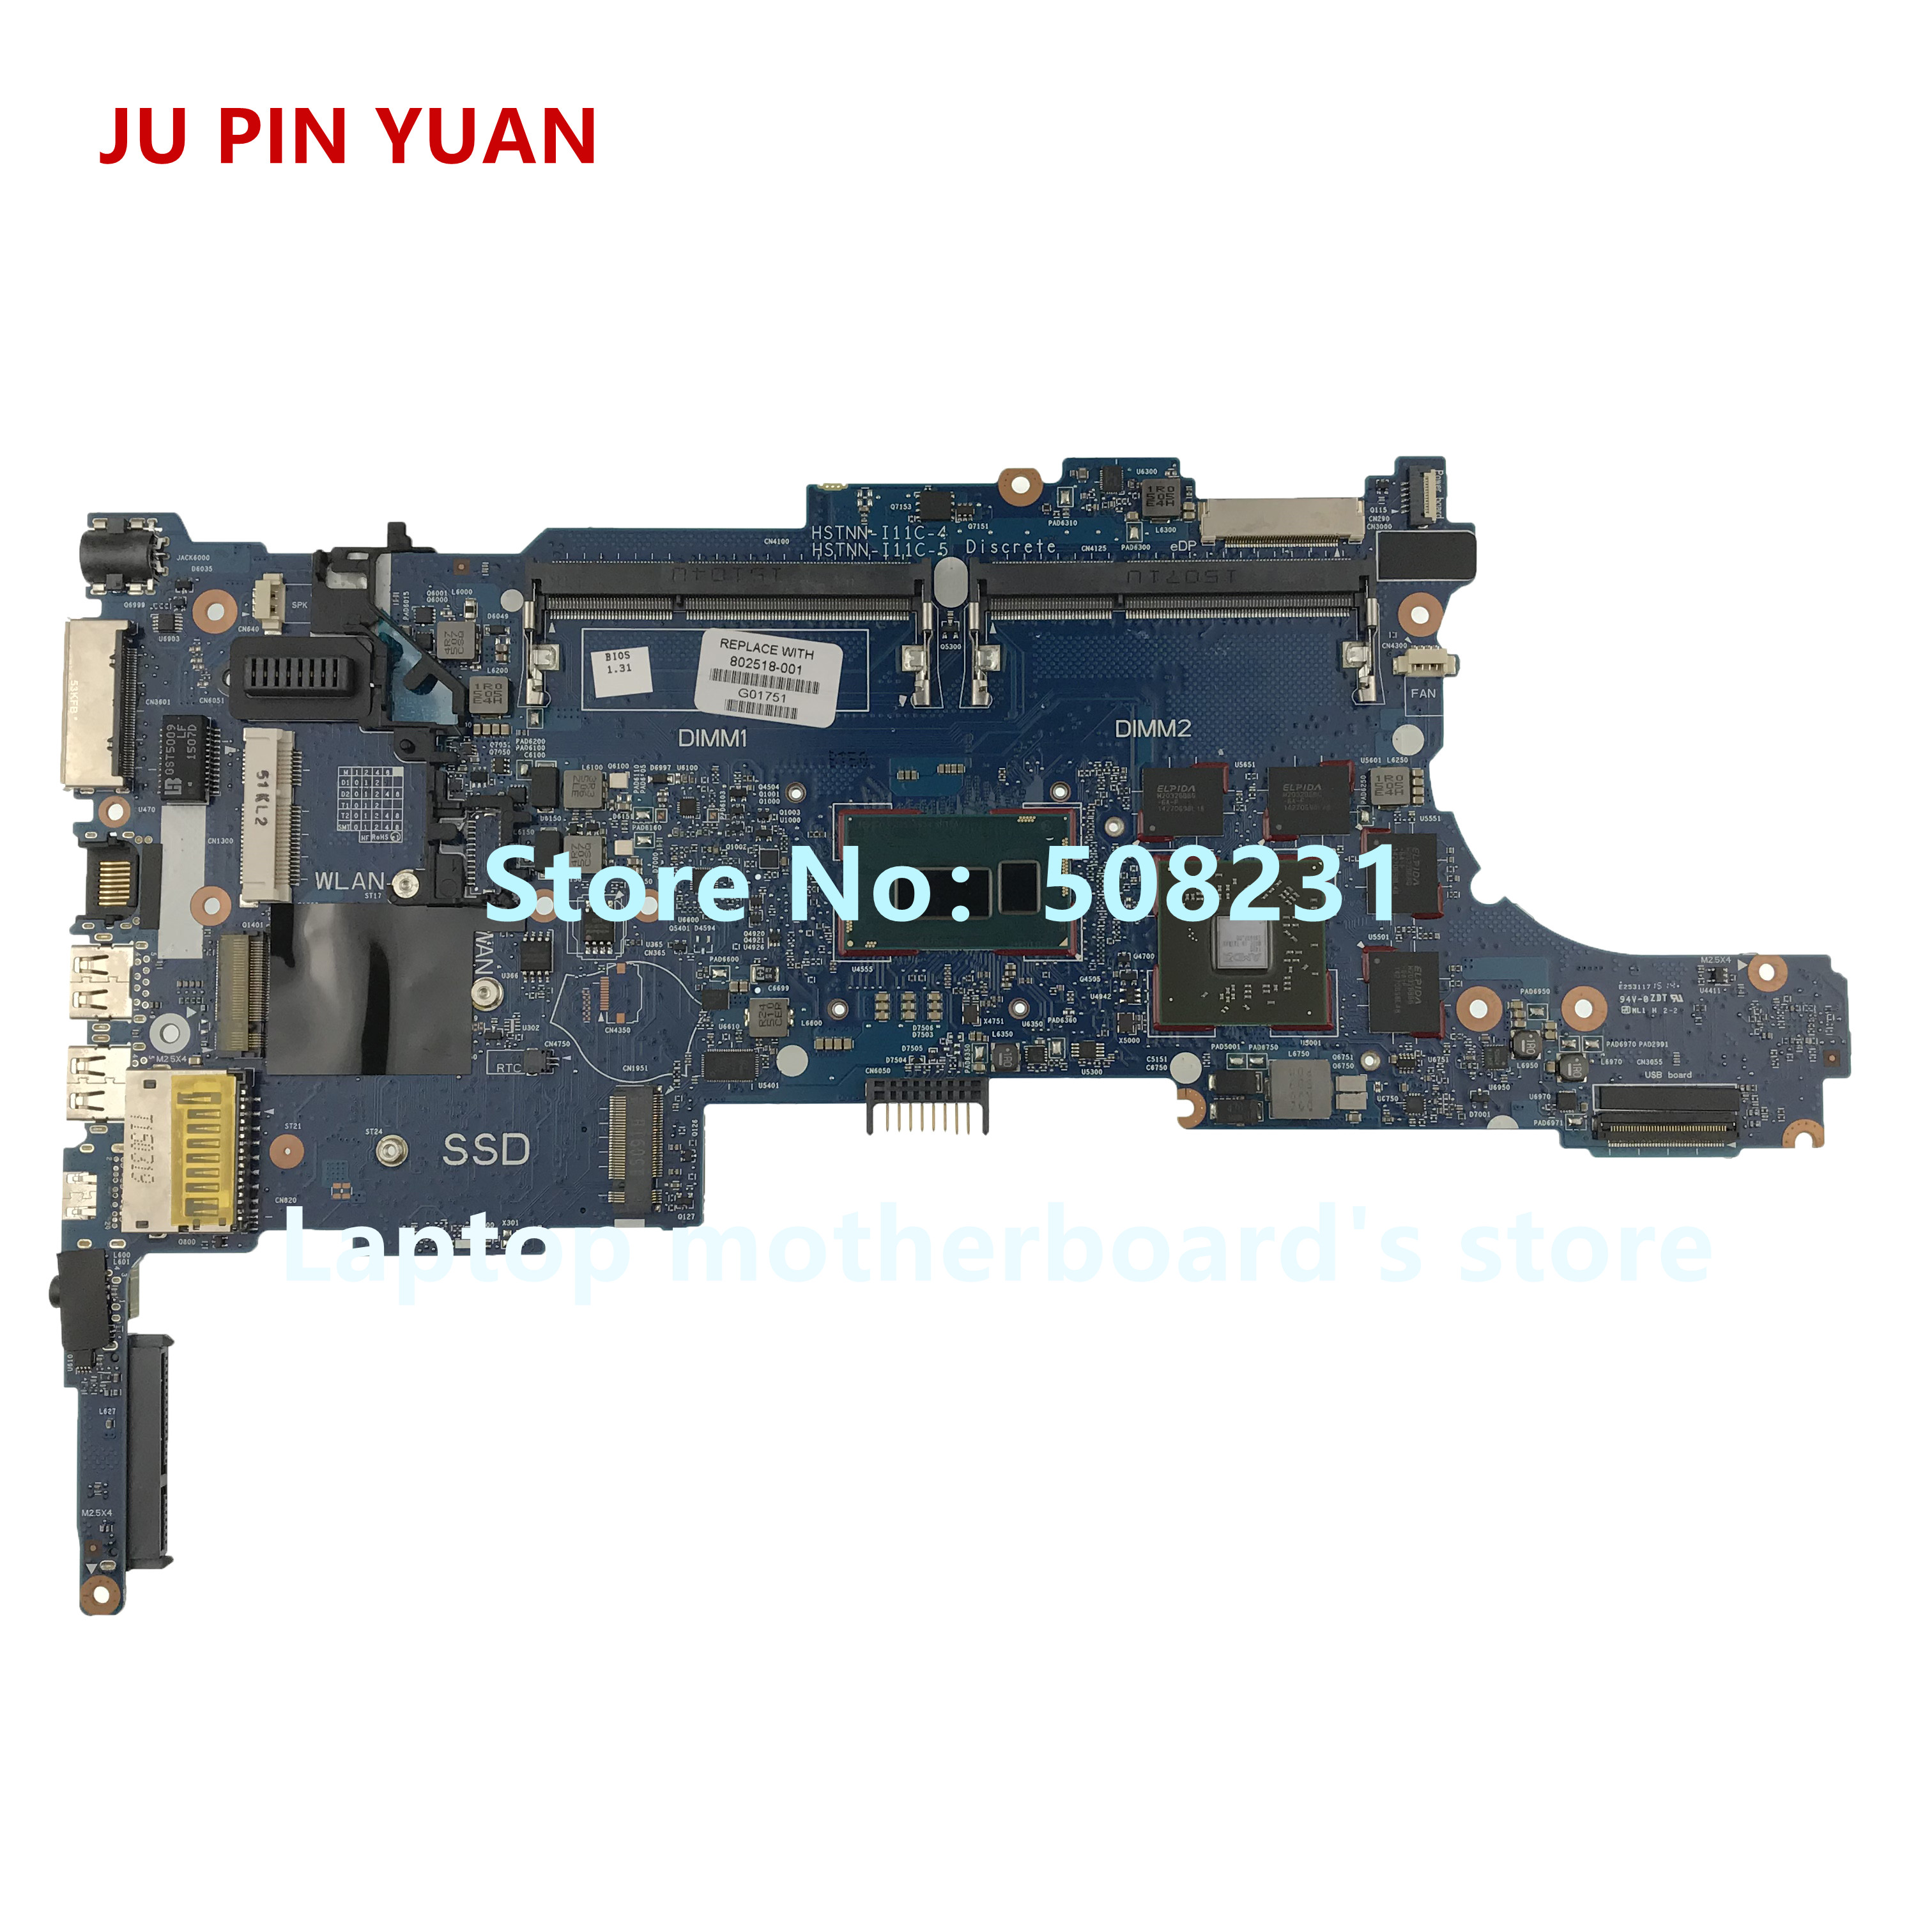 JU PIN YUAN 802518 601 802518 501 802518 001 For HP 840 for HP EliteBook 840 G1 Laptop motherboard With i7 4600U fully Tested